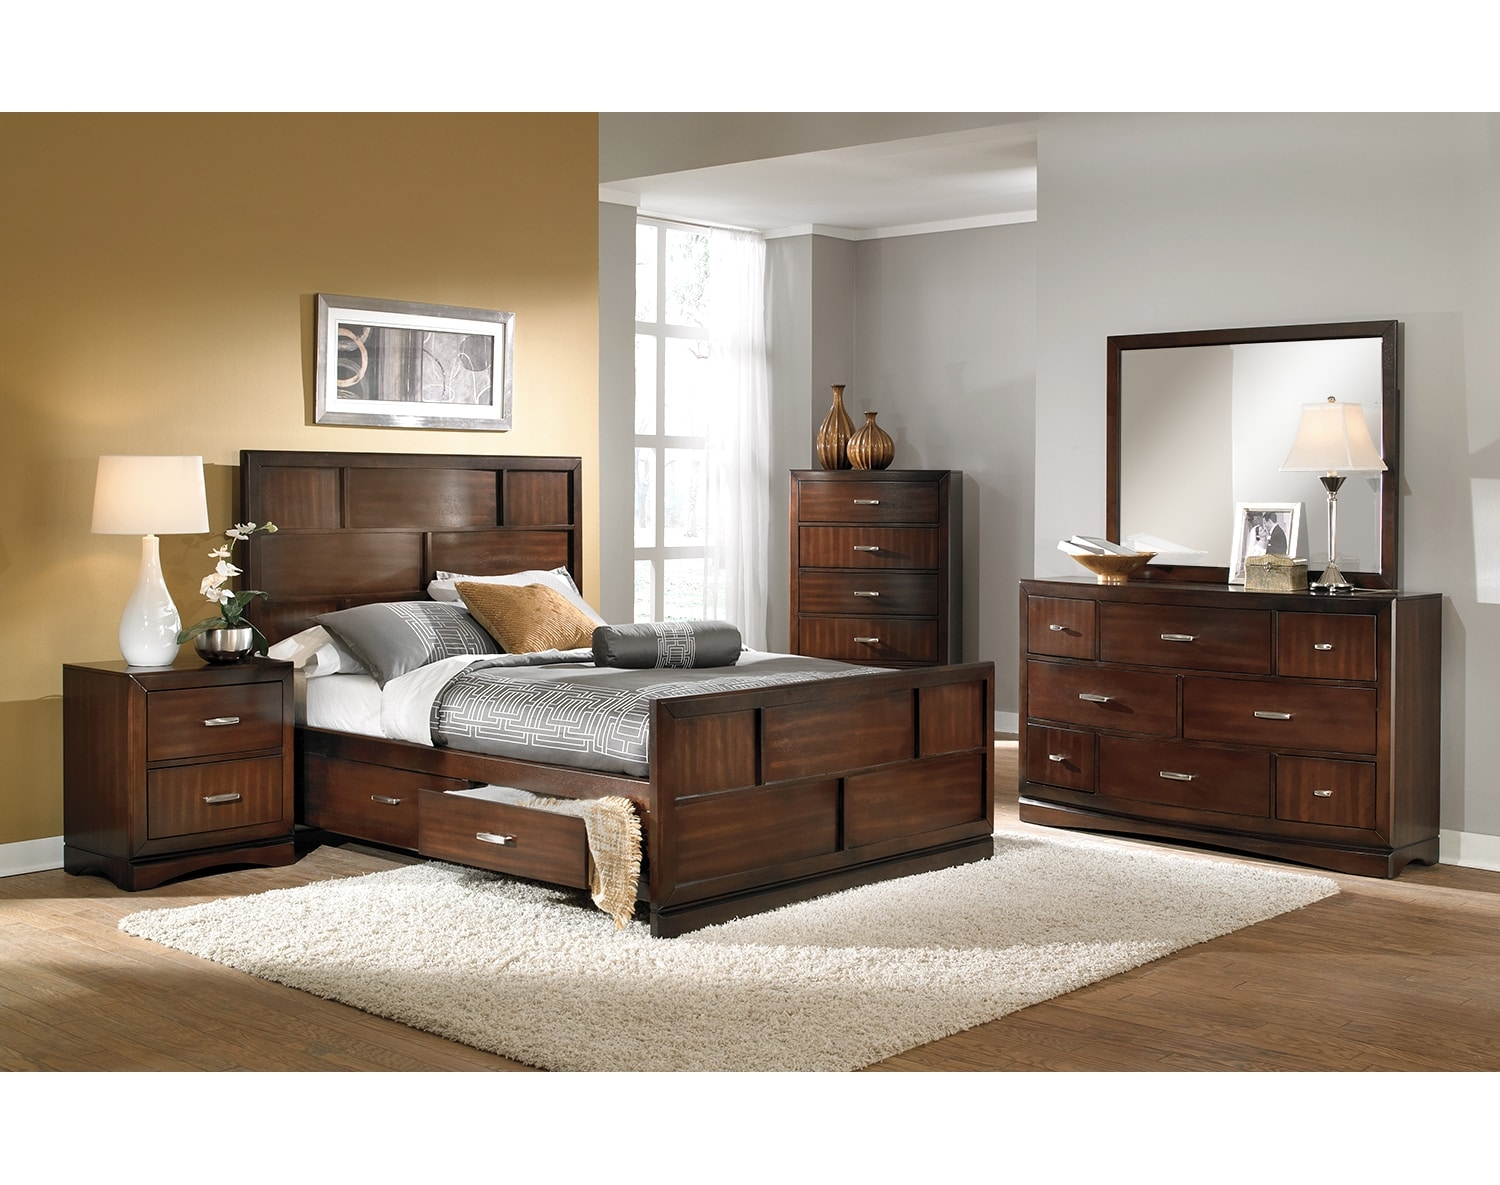 Bedroom Furniture - The Claremont Collection - Queen Storage Bed